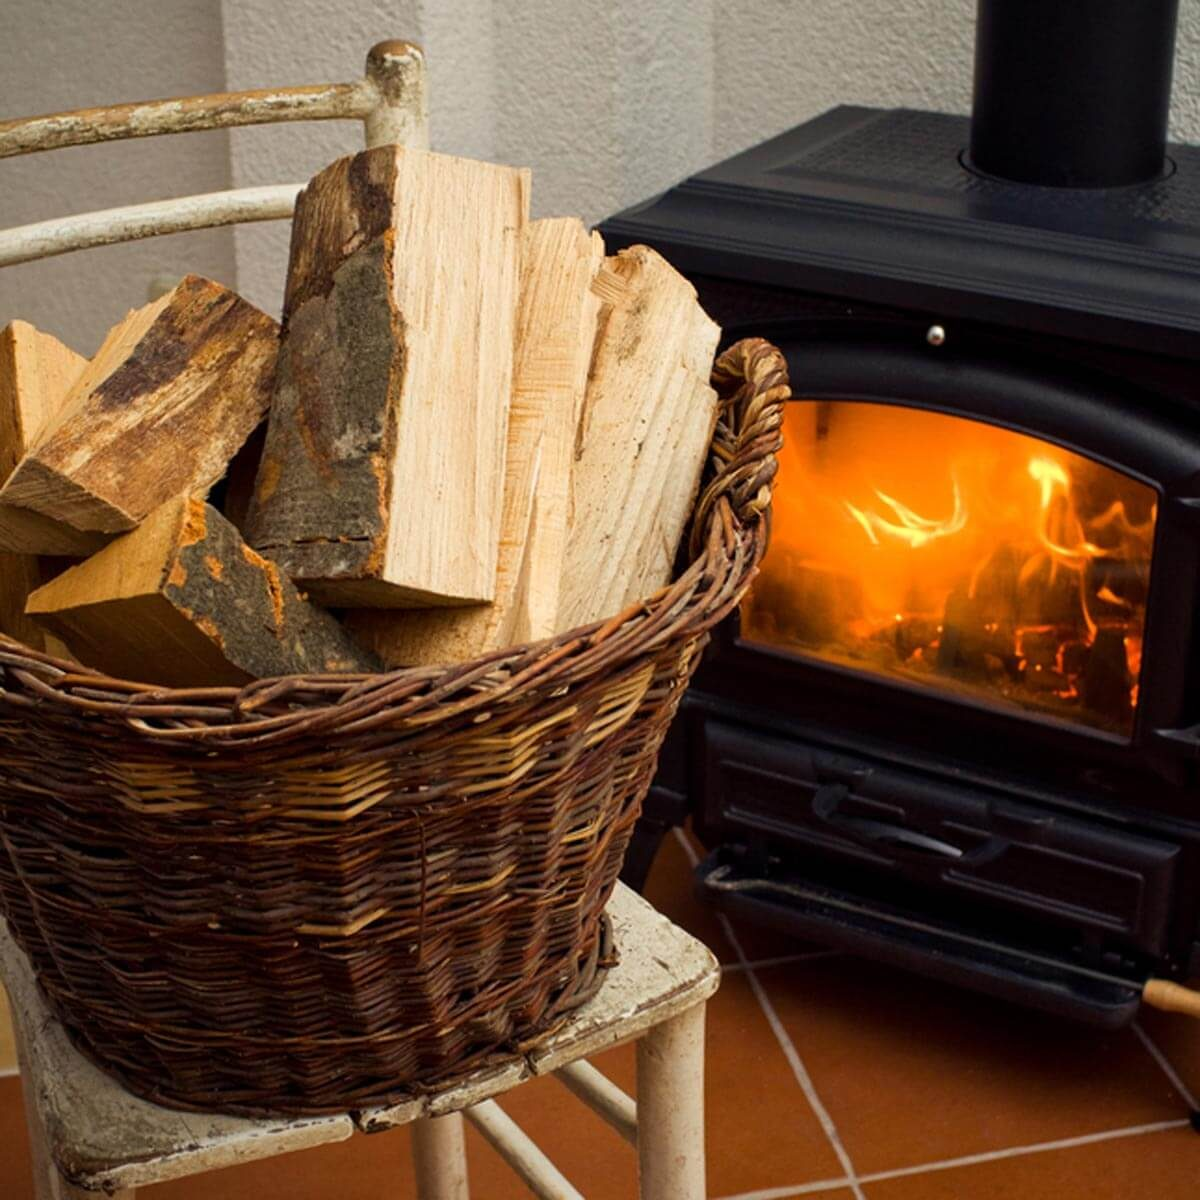 Safely Heat Your Home